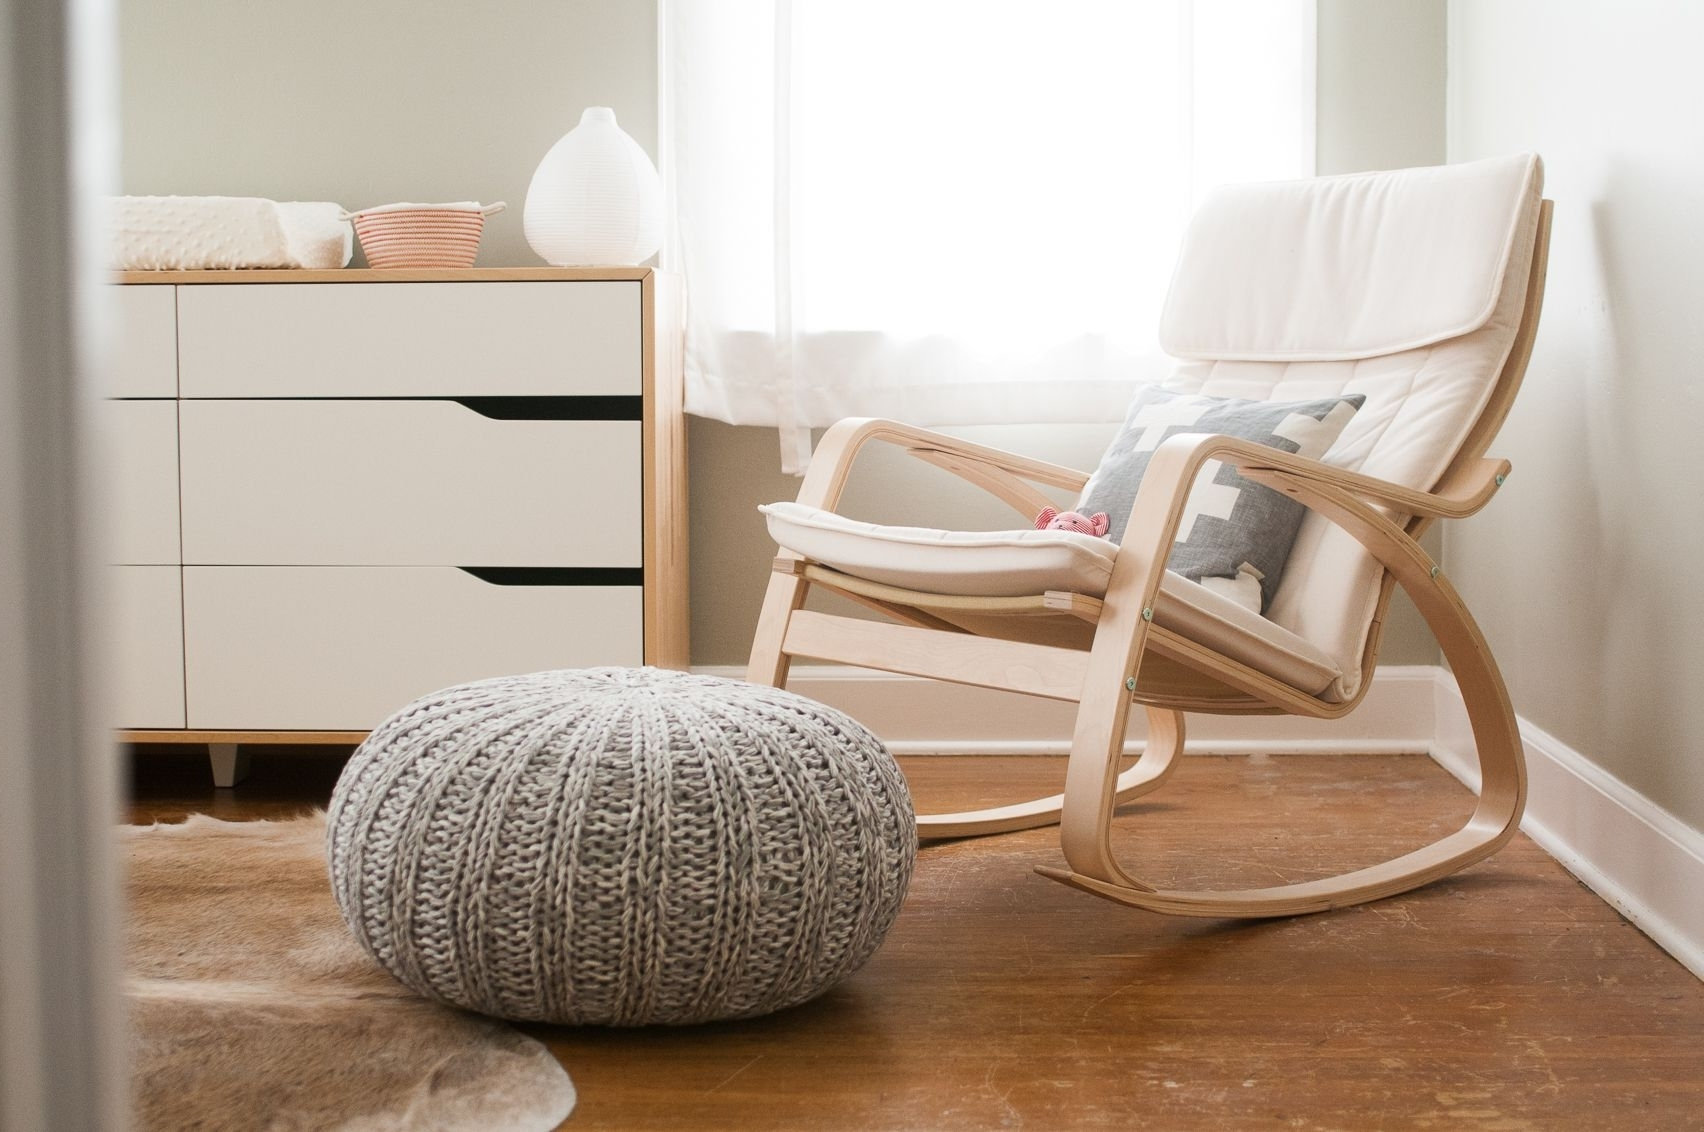 White Wicker Rocking Chair For Nursery With Regard To Most Recent Ikea Poang Rocking Chair For Gray And White Nursery (View 15 of 15)